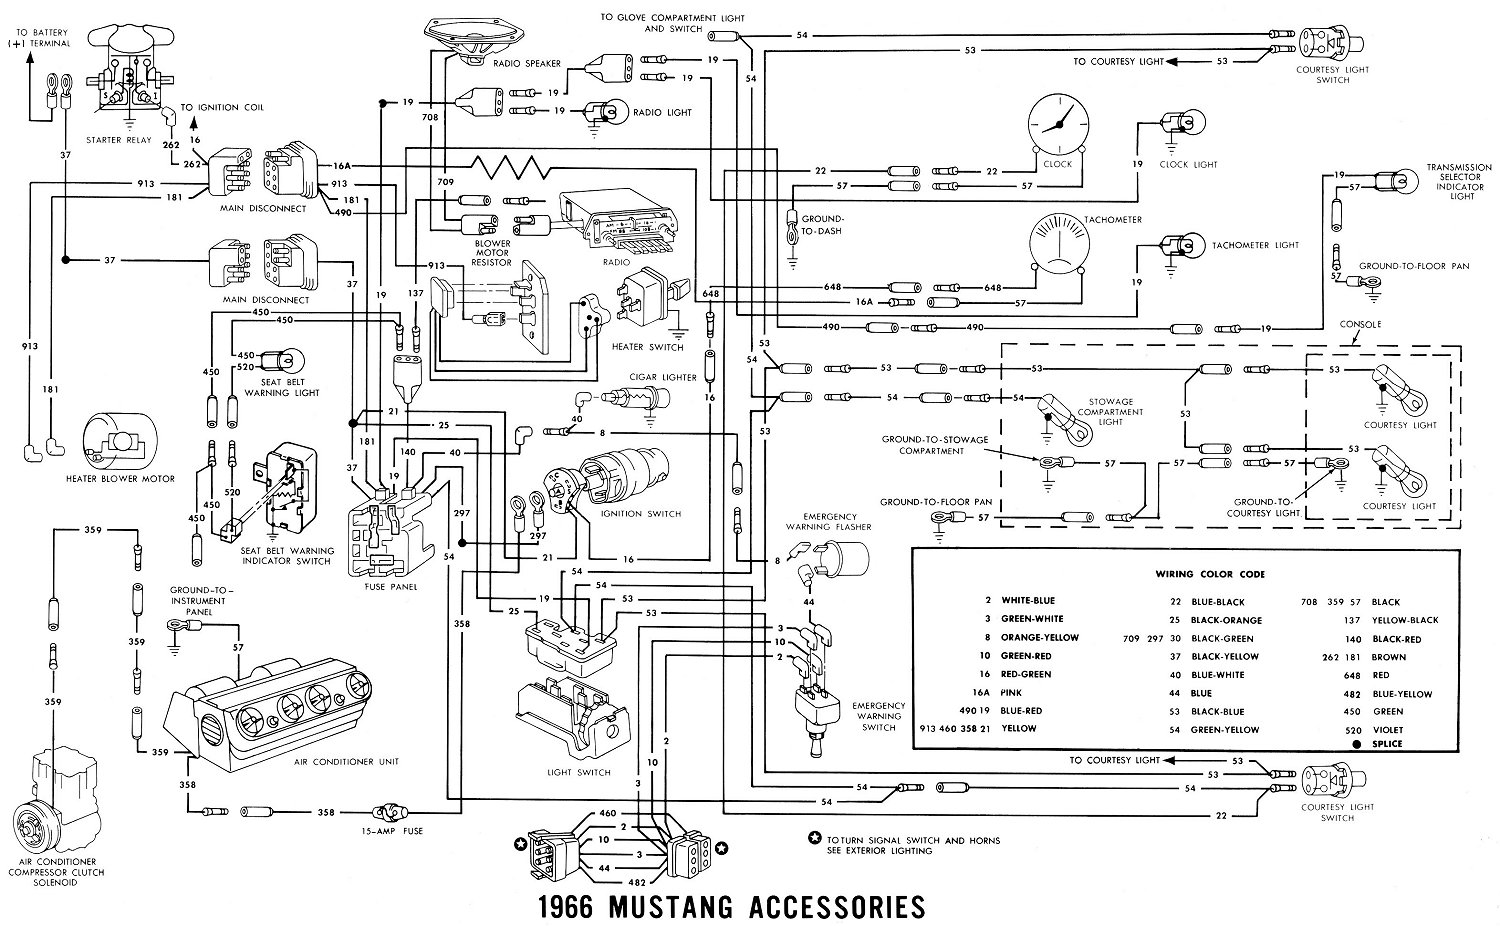 66acces1 66 mustang wiring diagram 1966 mustang dash wiring diagram  at virtualis.co